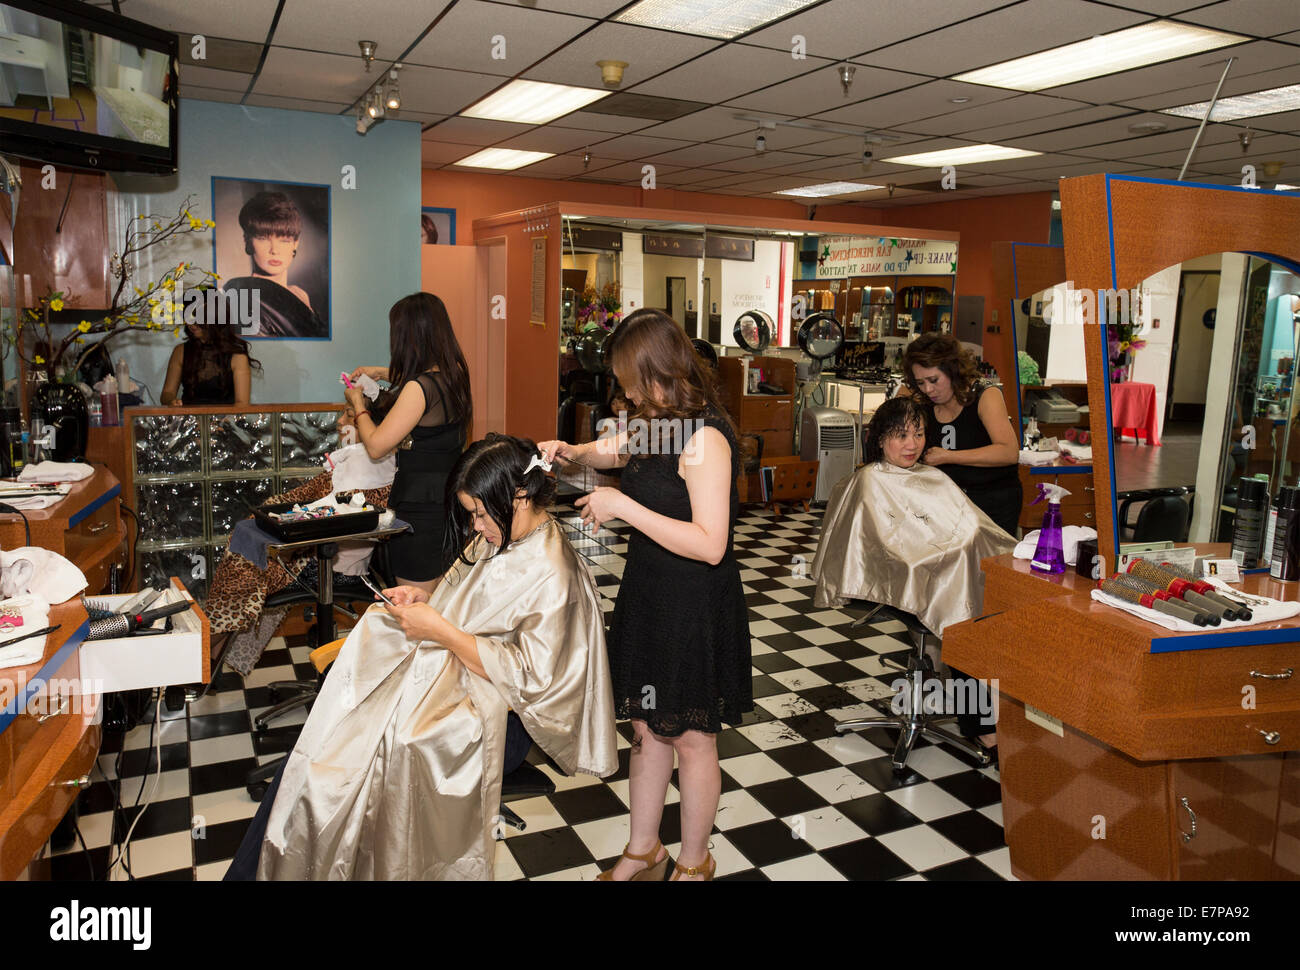 vietnamese hair salon stock photos & vietnamese hair salon stock